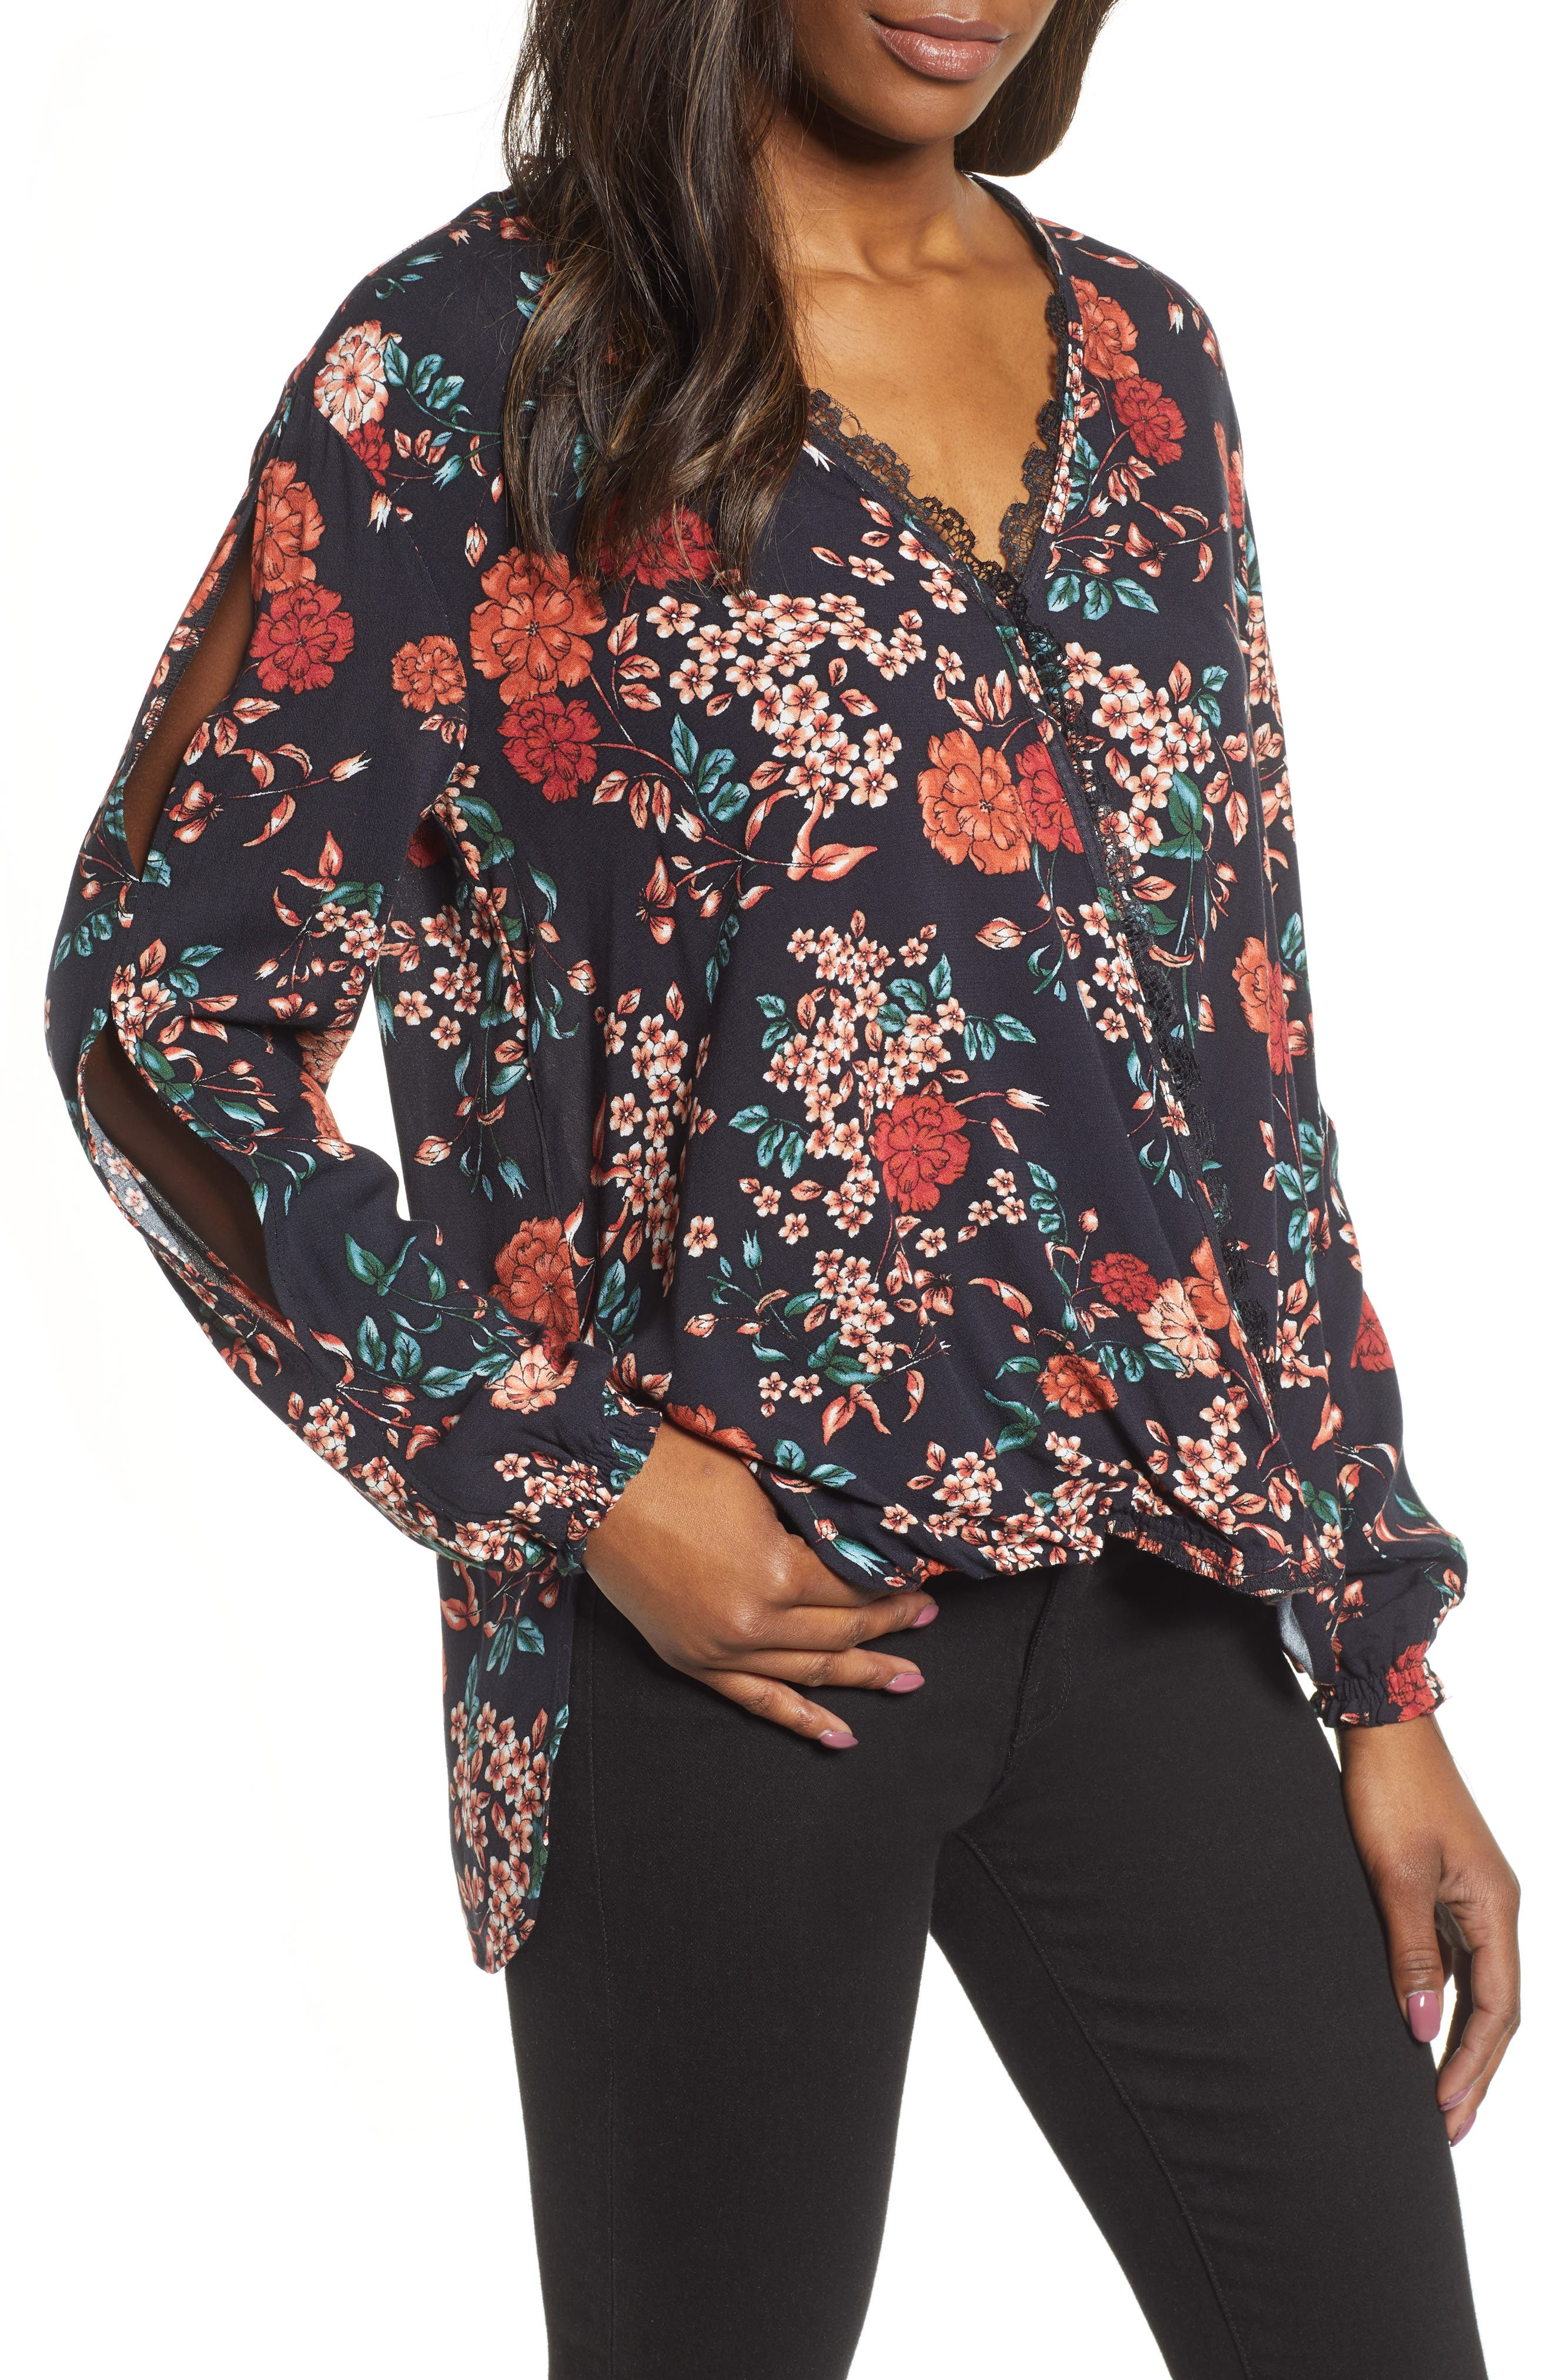 If the plans are hot you\\\'ll definitely want this top\\\'s built-in cool thanks to the slits down the sleeves and the lace trimming the faux wrap front. Style Name: Wit & Wisdom Slit Sleeve Blouse (Nordstrom Exclusive). Style Number: 5706230. Available in stores.